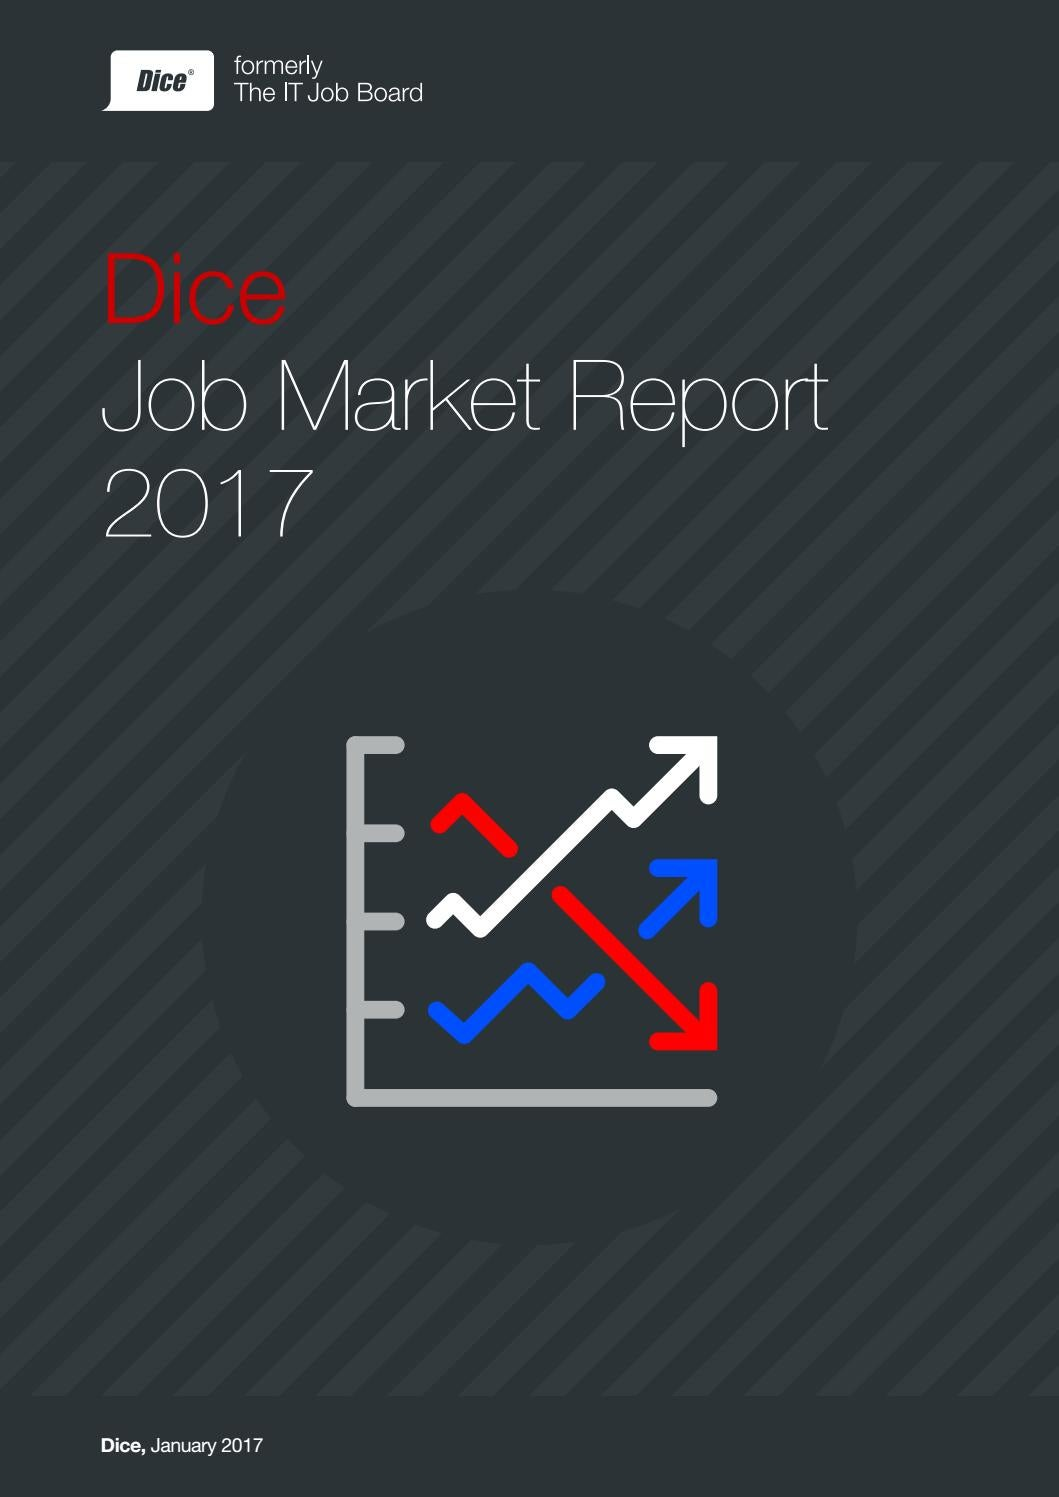 dice job market report 2017 by dice formerly the it job board issuu